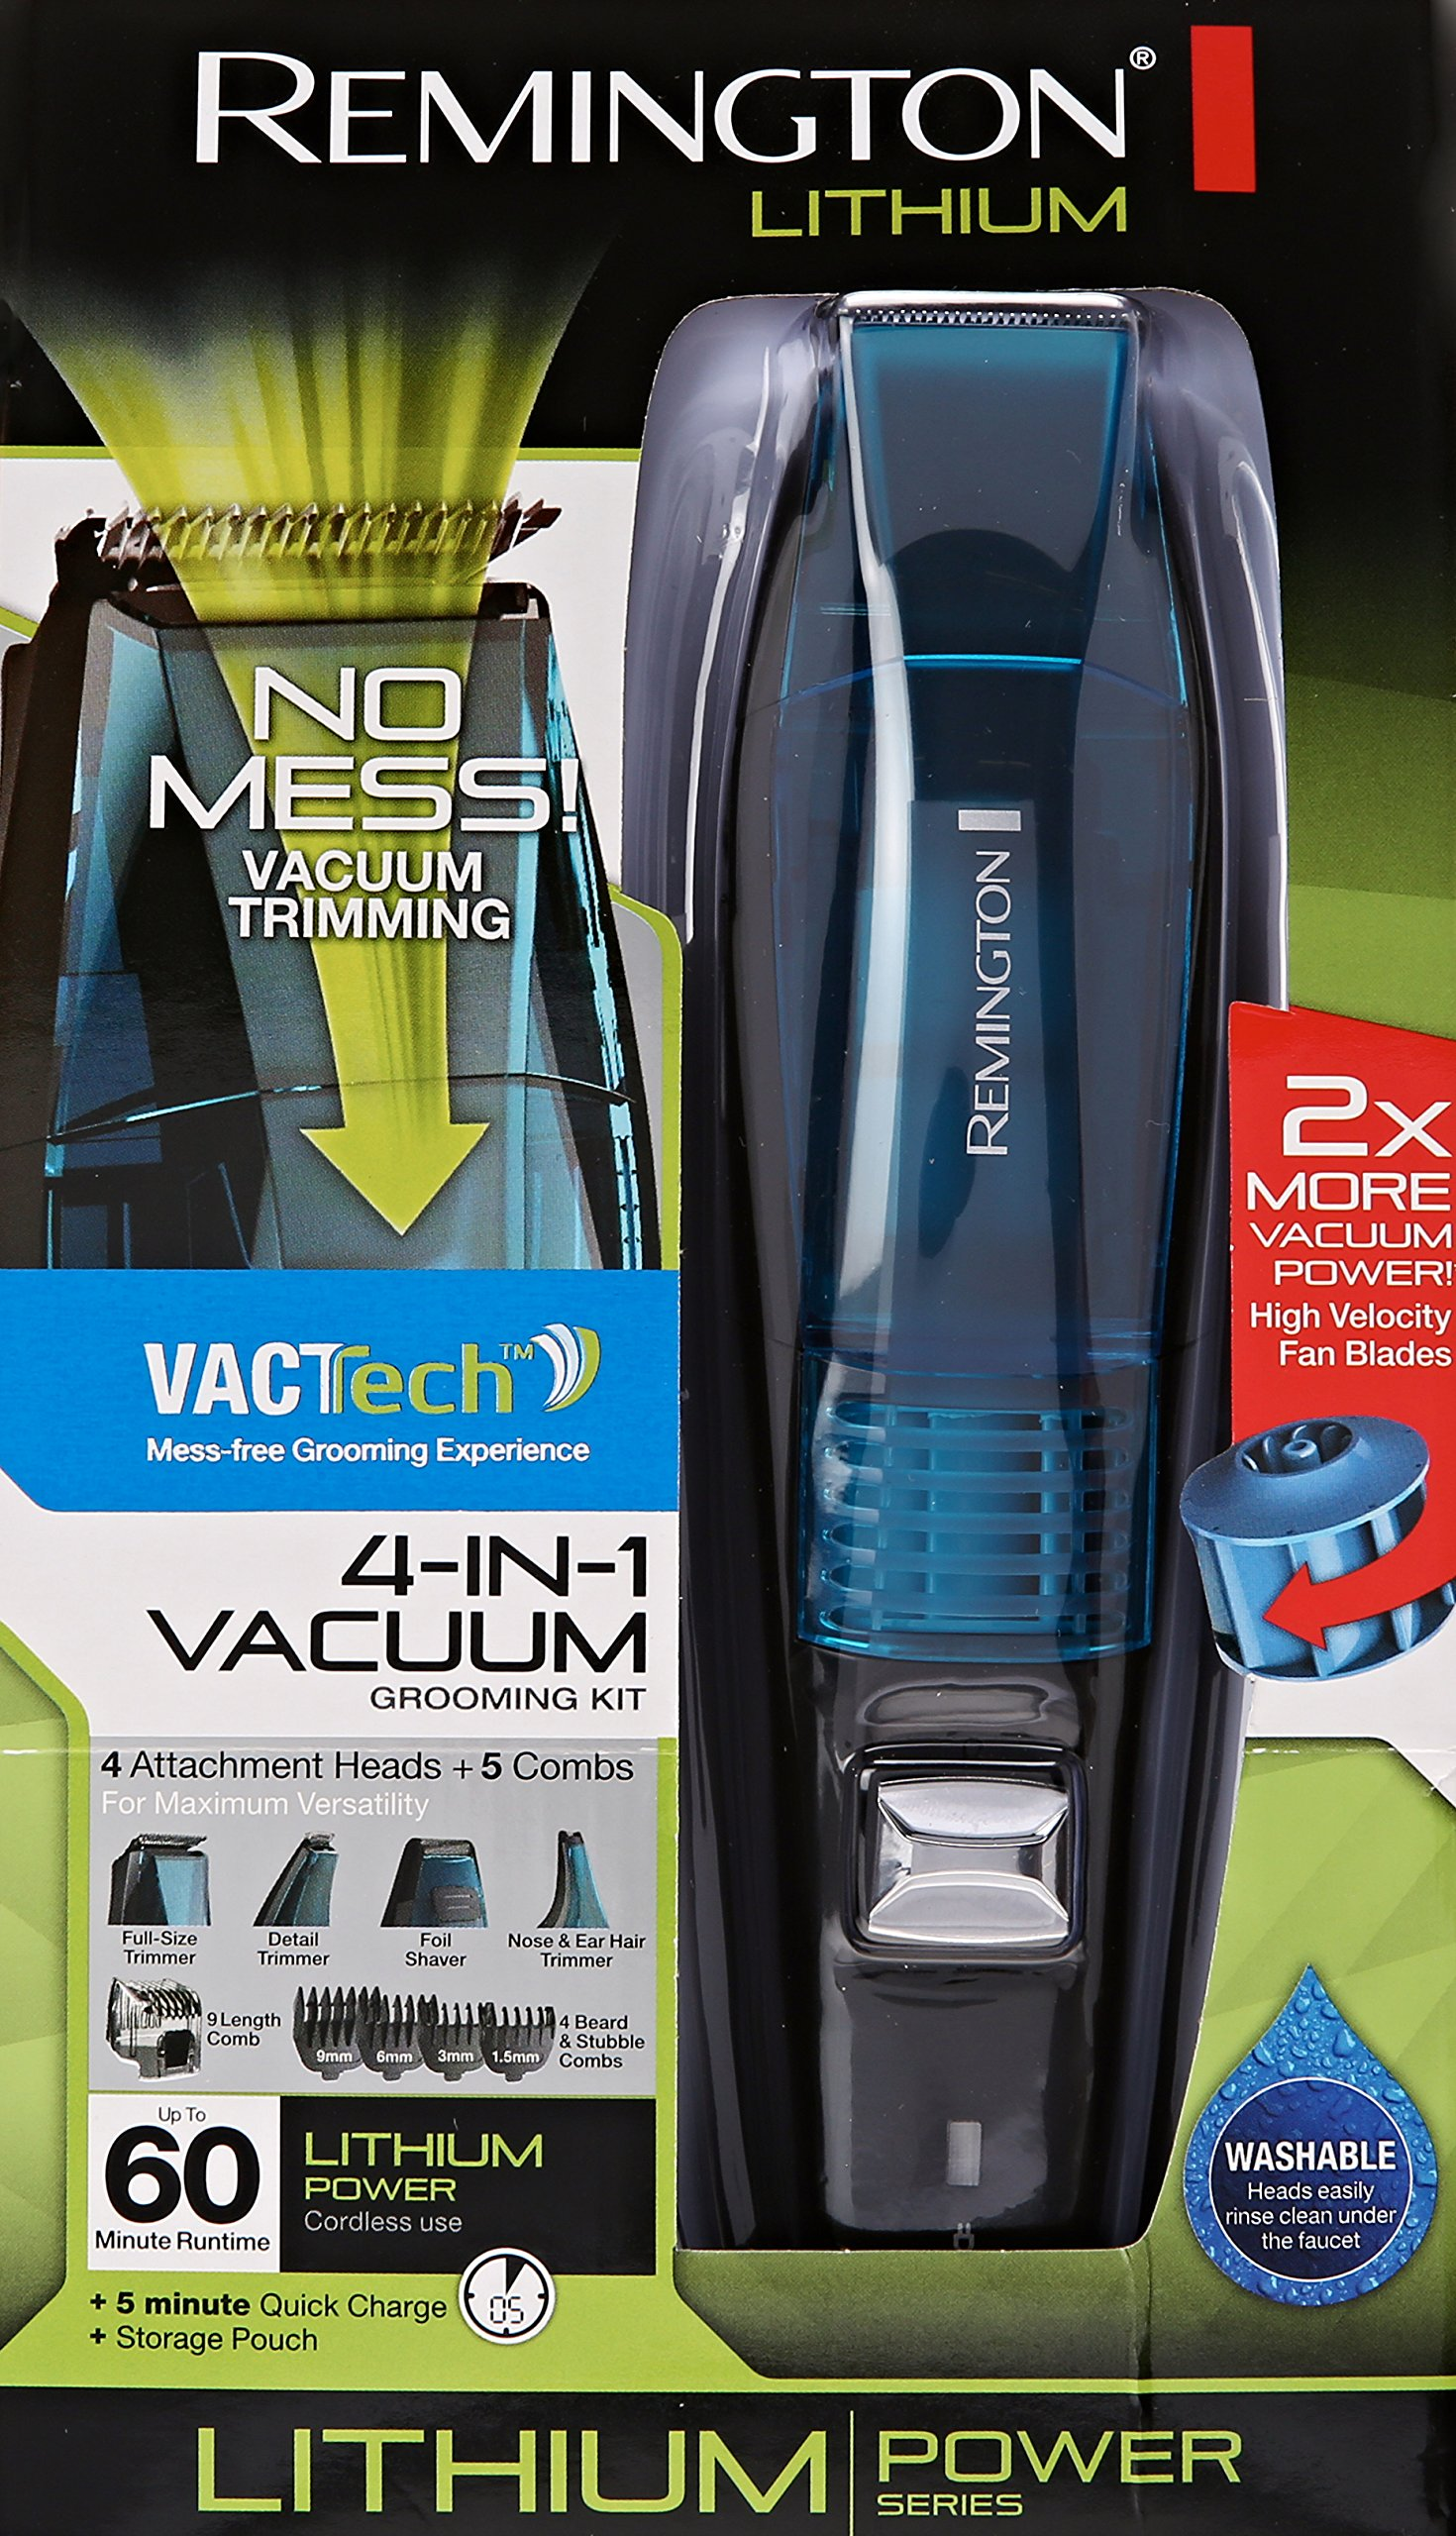 Remington VPG6530 Lithium Power Series 4 In 1 Vacuum Trimmer, Blue by Remington (Image #7)